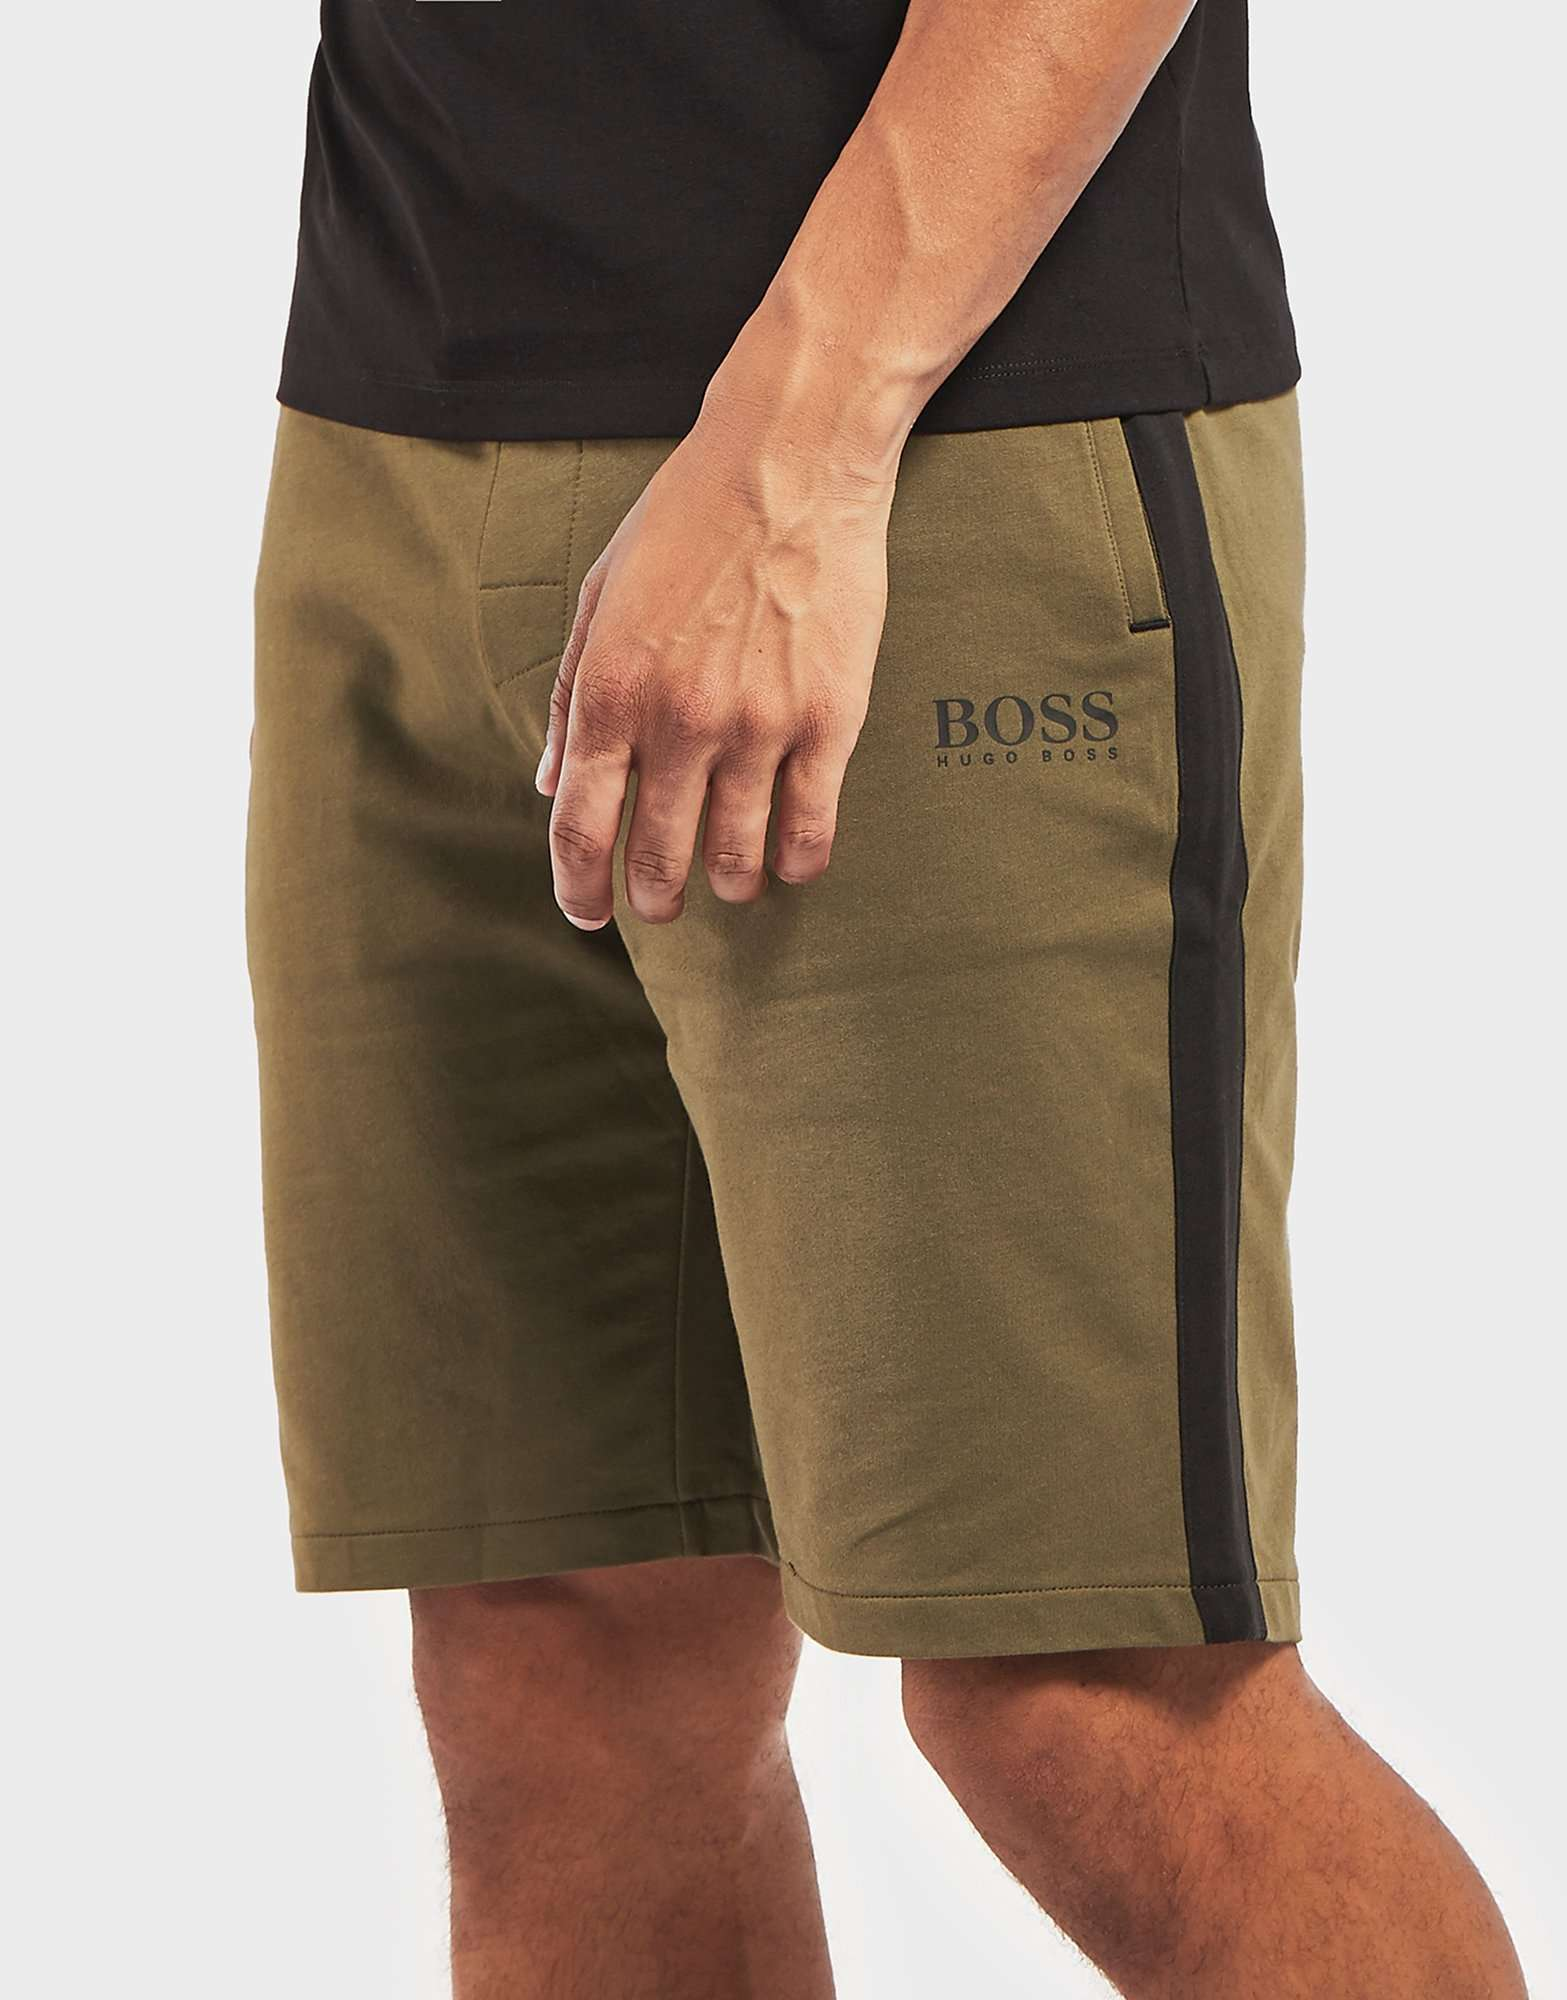 BOSS Authentic Fleece Shorts - Exclusive